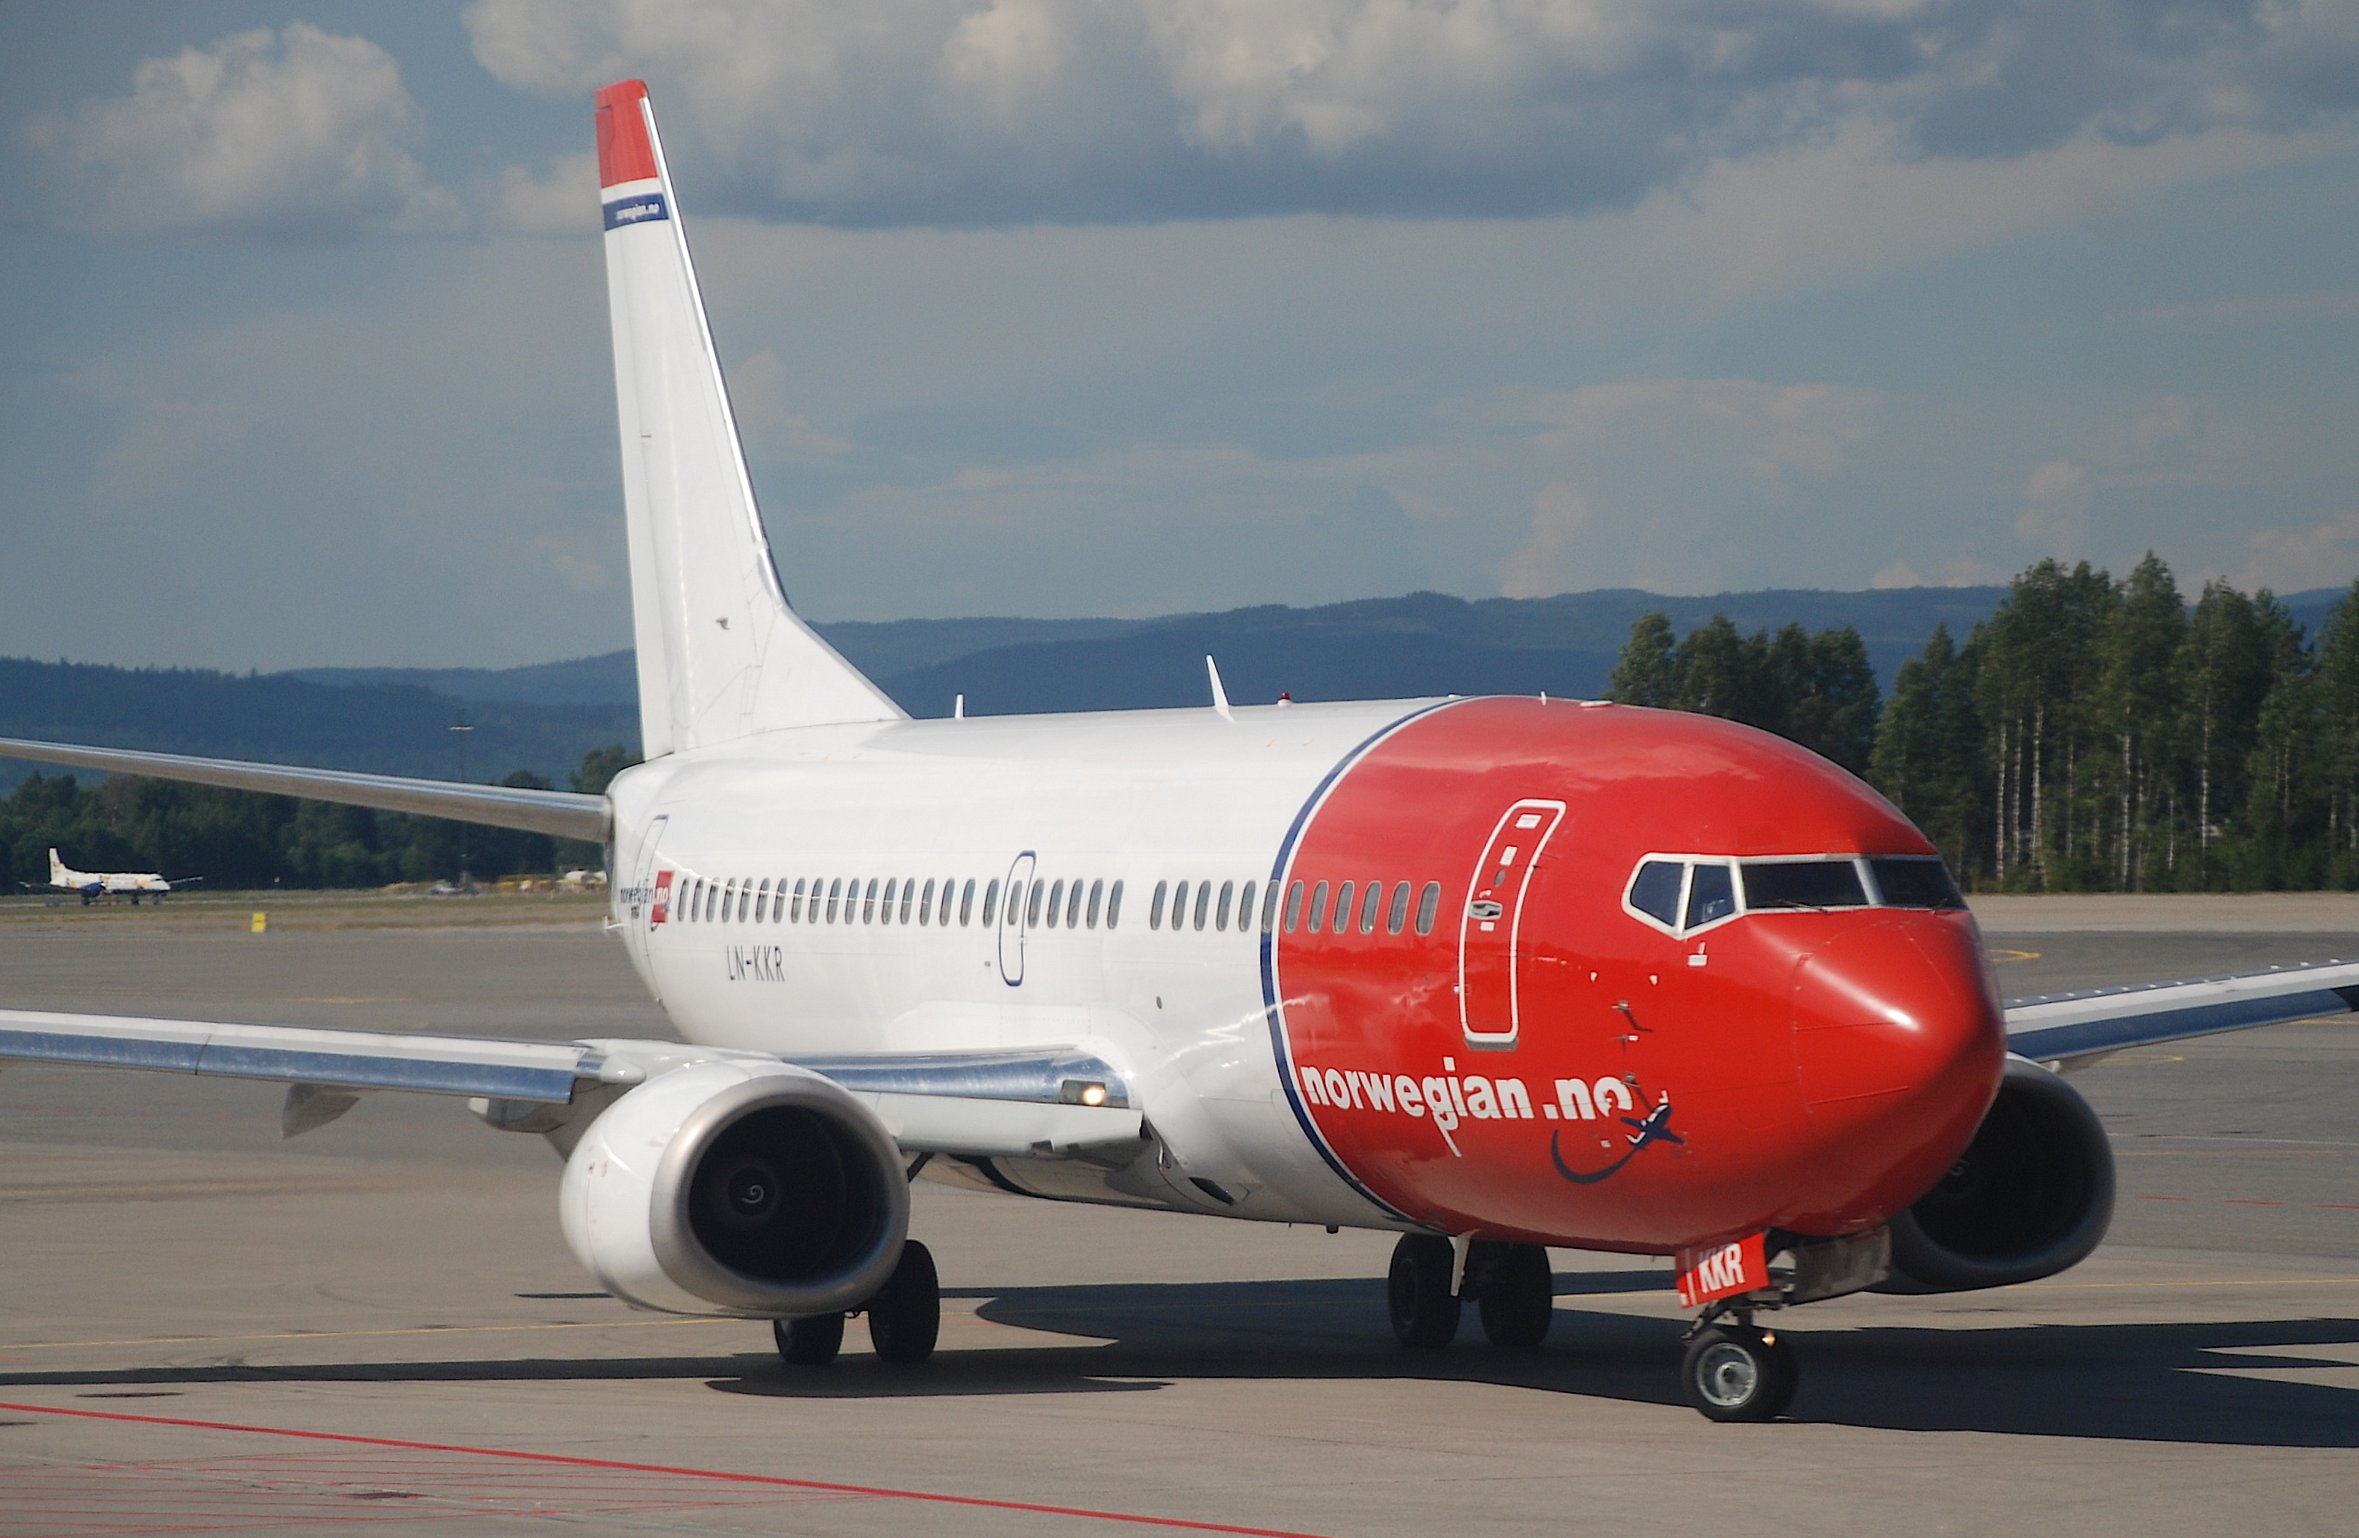 Norwegian Air Shuttle will operate the long-haul budget route.